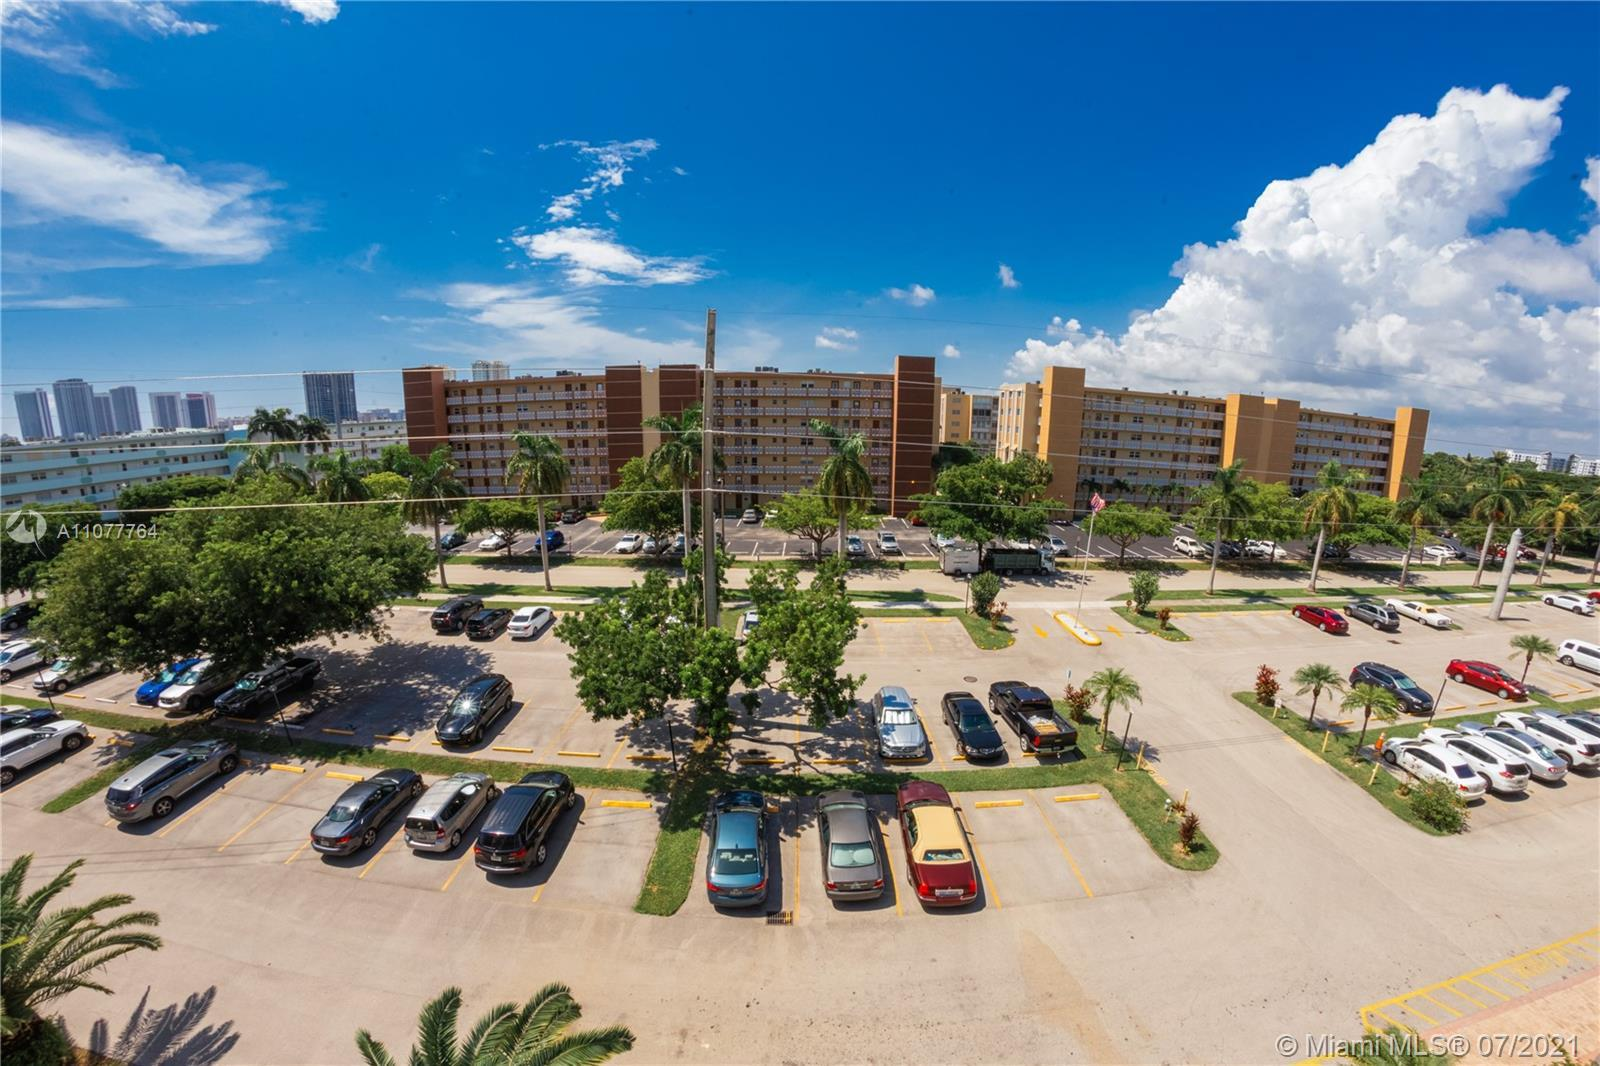 AMAZING APARTMENT. INCREDIBLE APARTMENT IN THE HEART OF HALLANDALE BEACH, LOTS OF CLOSET SPACE, WASH